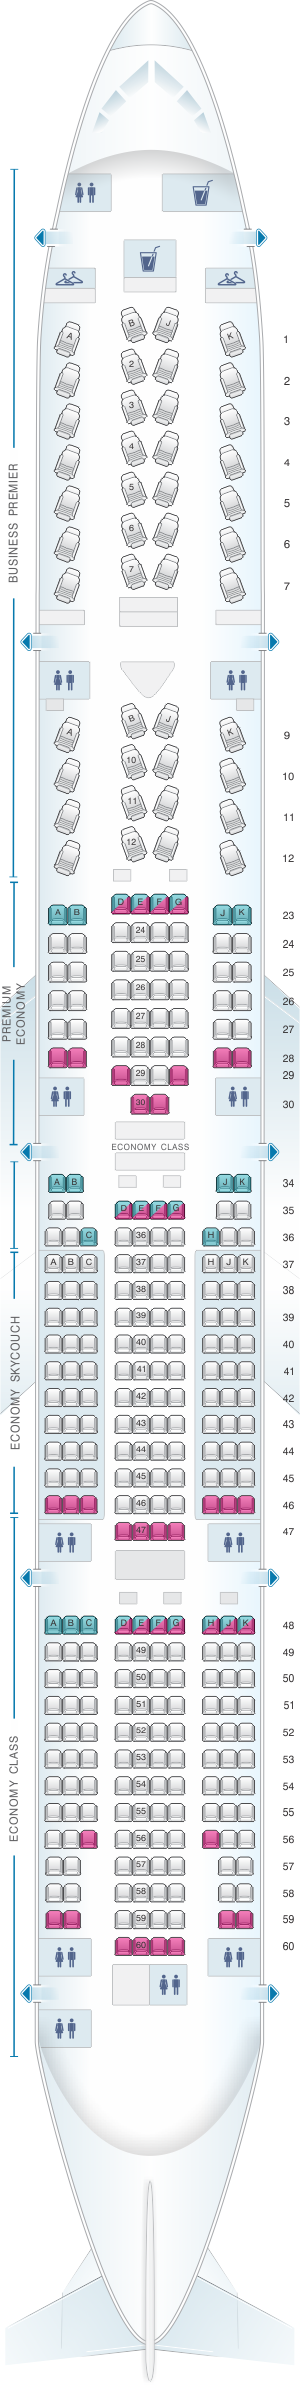 Seat map for Air New Zealand Boeing B777 300 refurbished